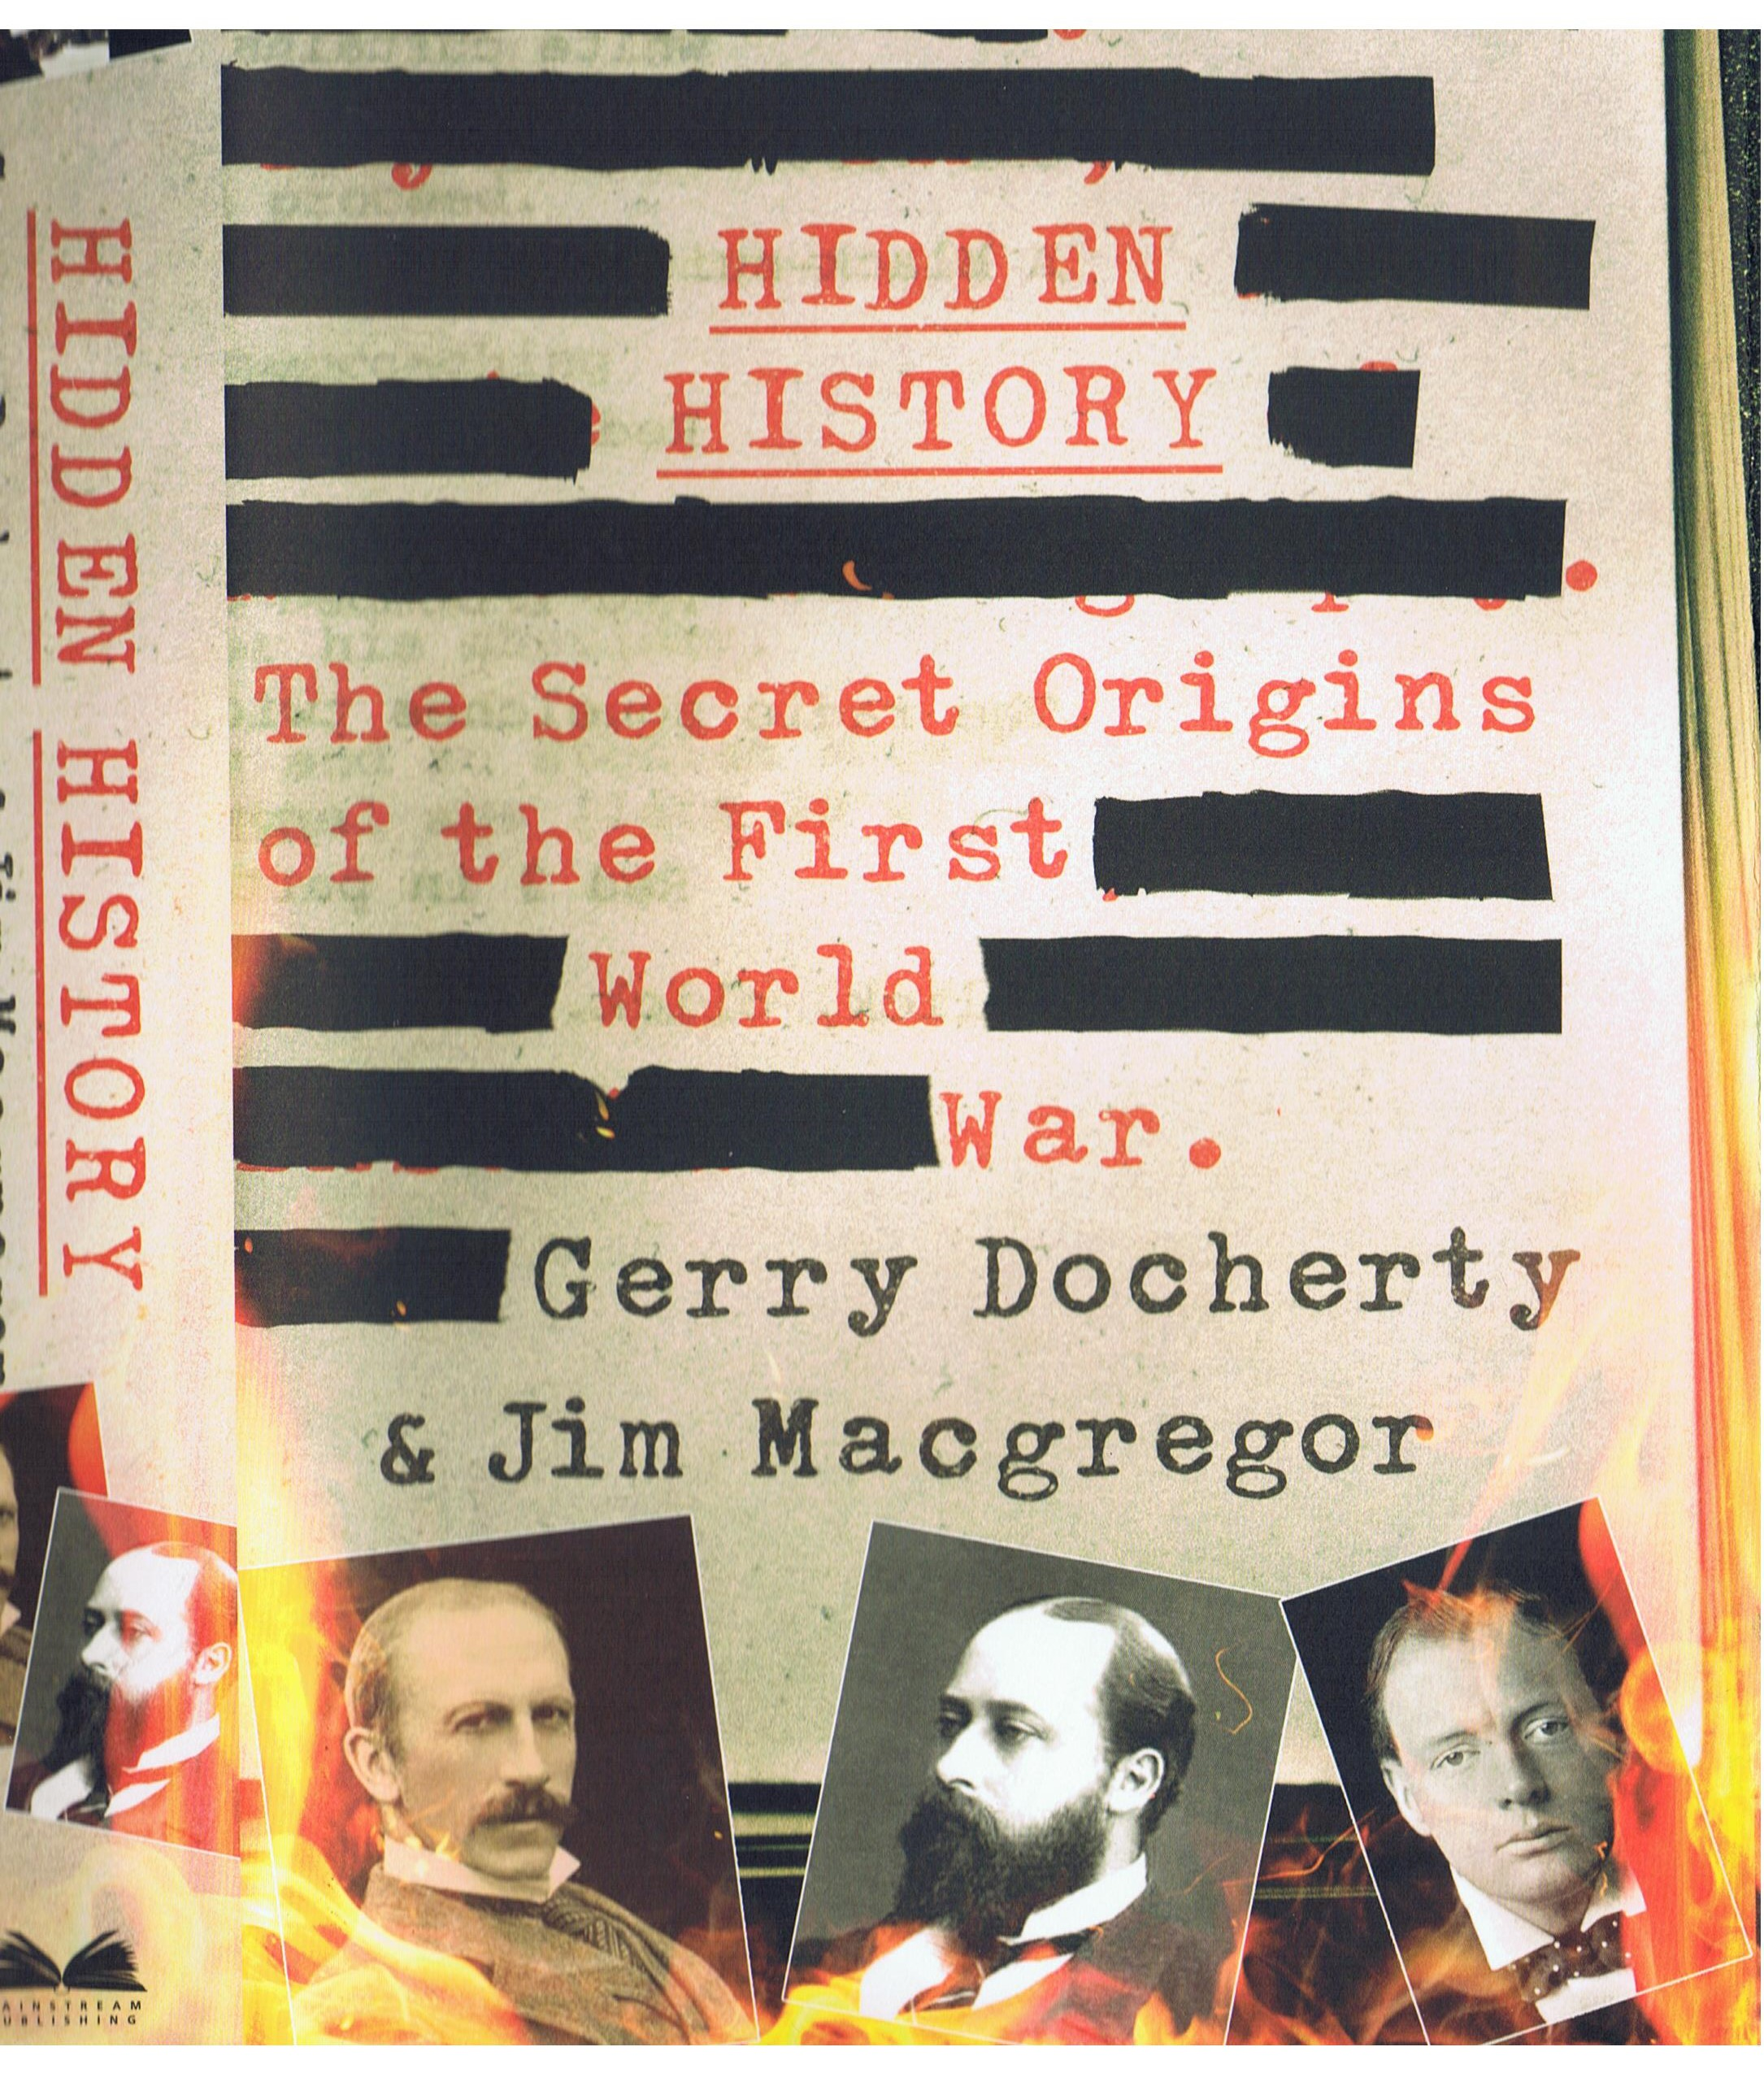 How to purchase Hidden History: The secret origins of the First World War by Gerry Docherty and Jim Macgregor